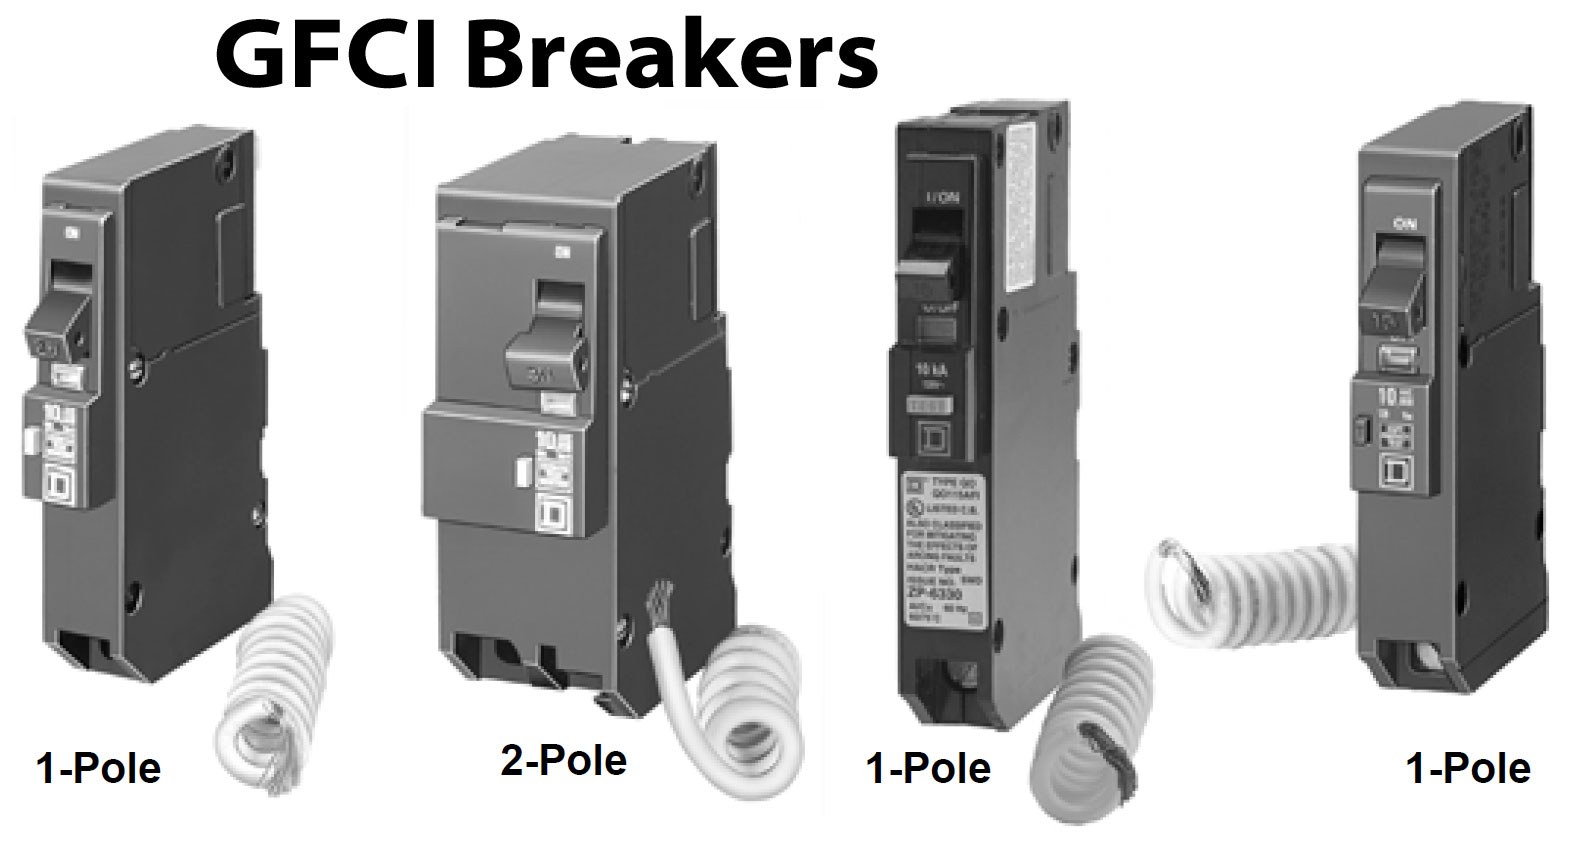 GFCI breakers 1000 how to install and troubleshoot gfci eaton gfci breaker wiring diagram at panicattacktreatment.co